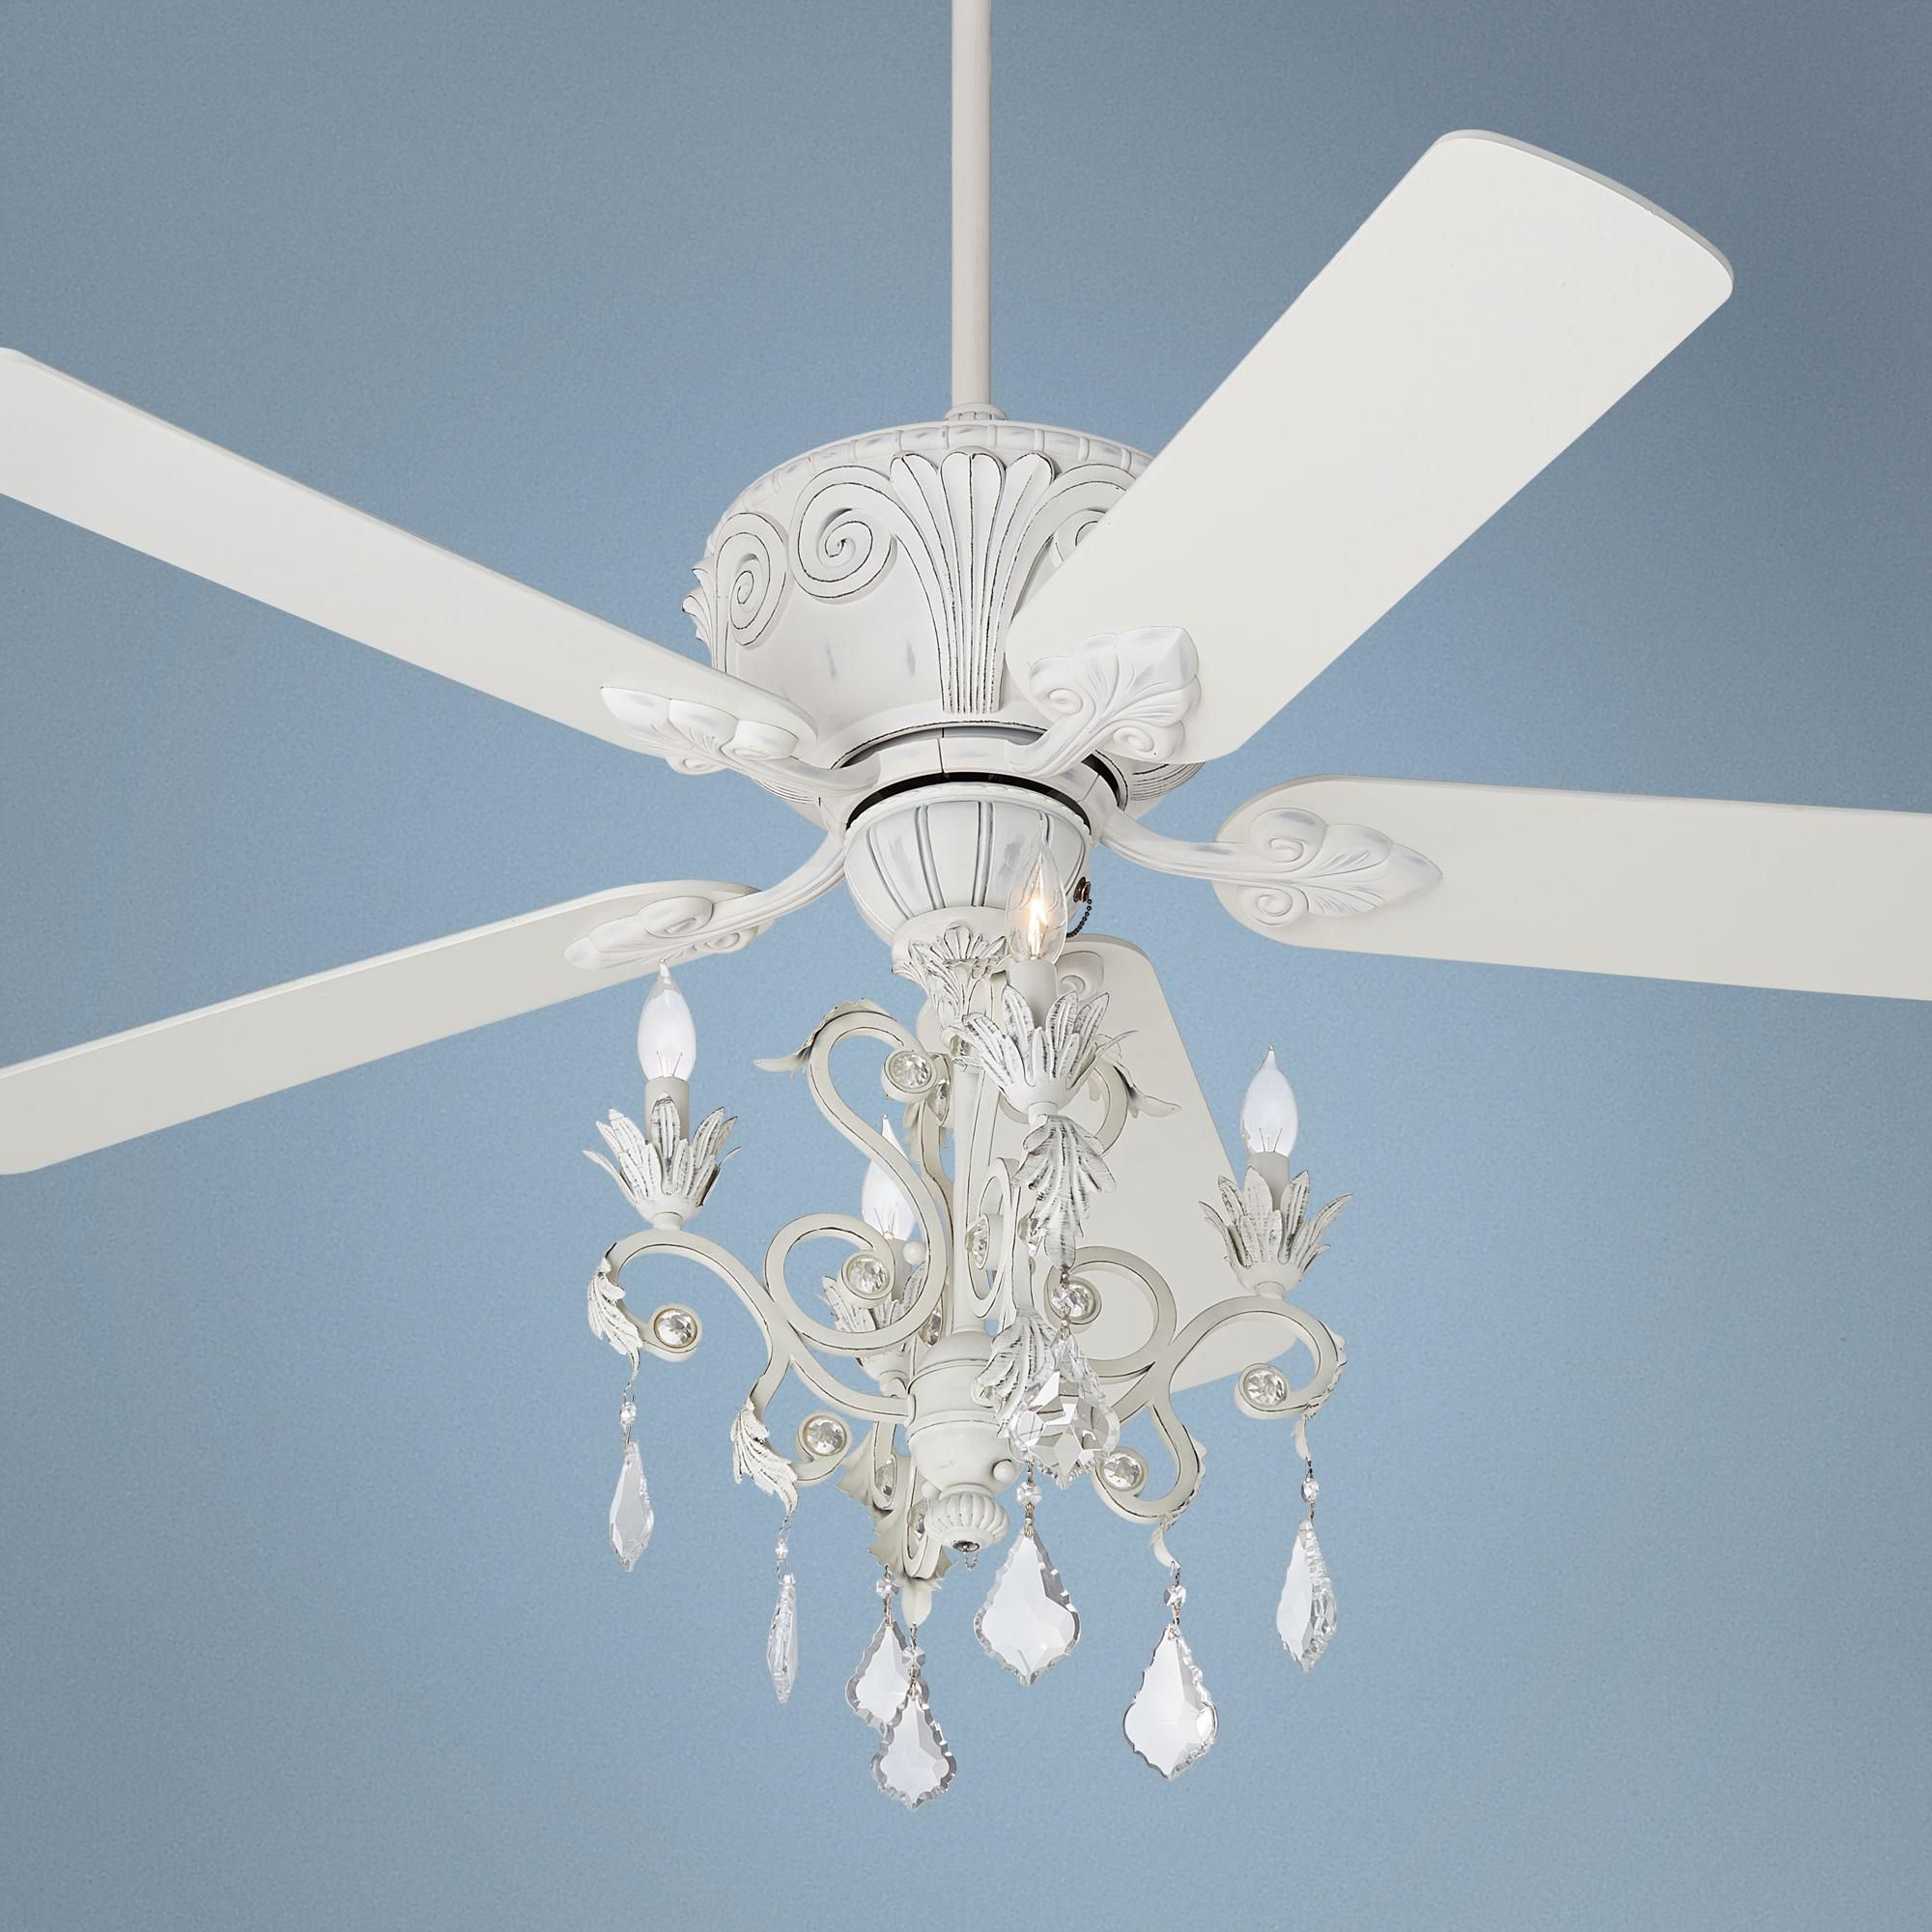 Antique White Ceiling Fan With Chandelier Casa Deville Rubbed White Chandelier Ceiling Fan Master